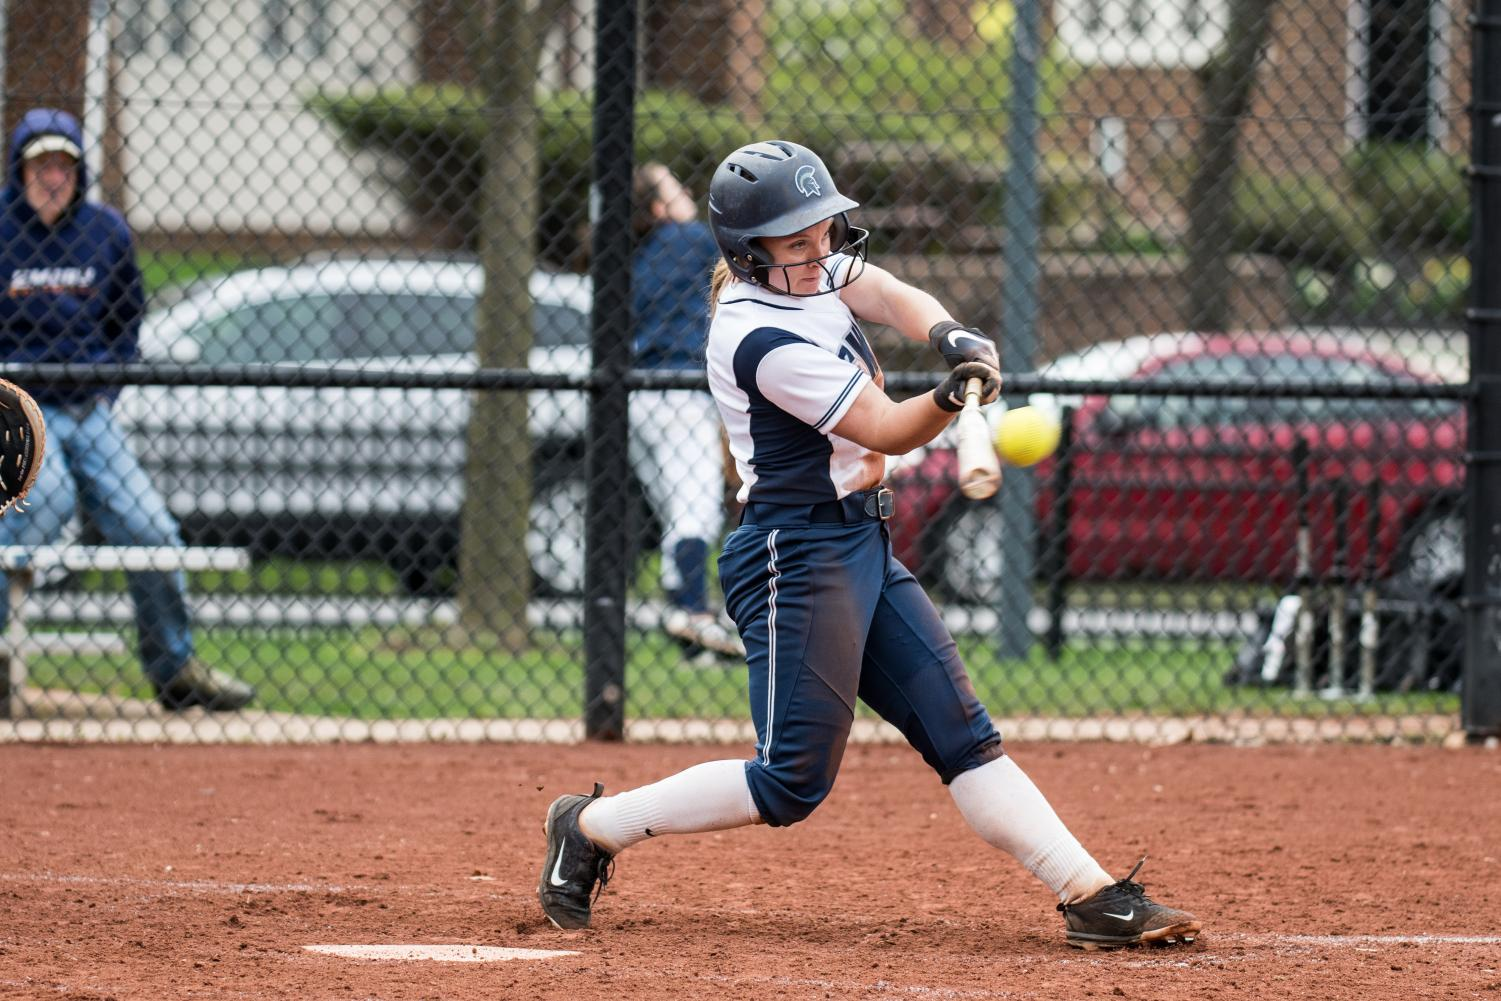 Nicole Doyle connects with a pitch. Doyle was honored last Saturday for the softball team's Senior Day. In her time on the team, Doyle has helped the Spartans go 97-60 over the last four seasons.